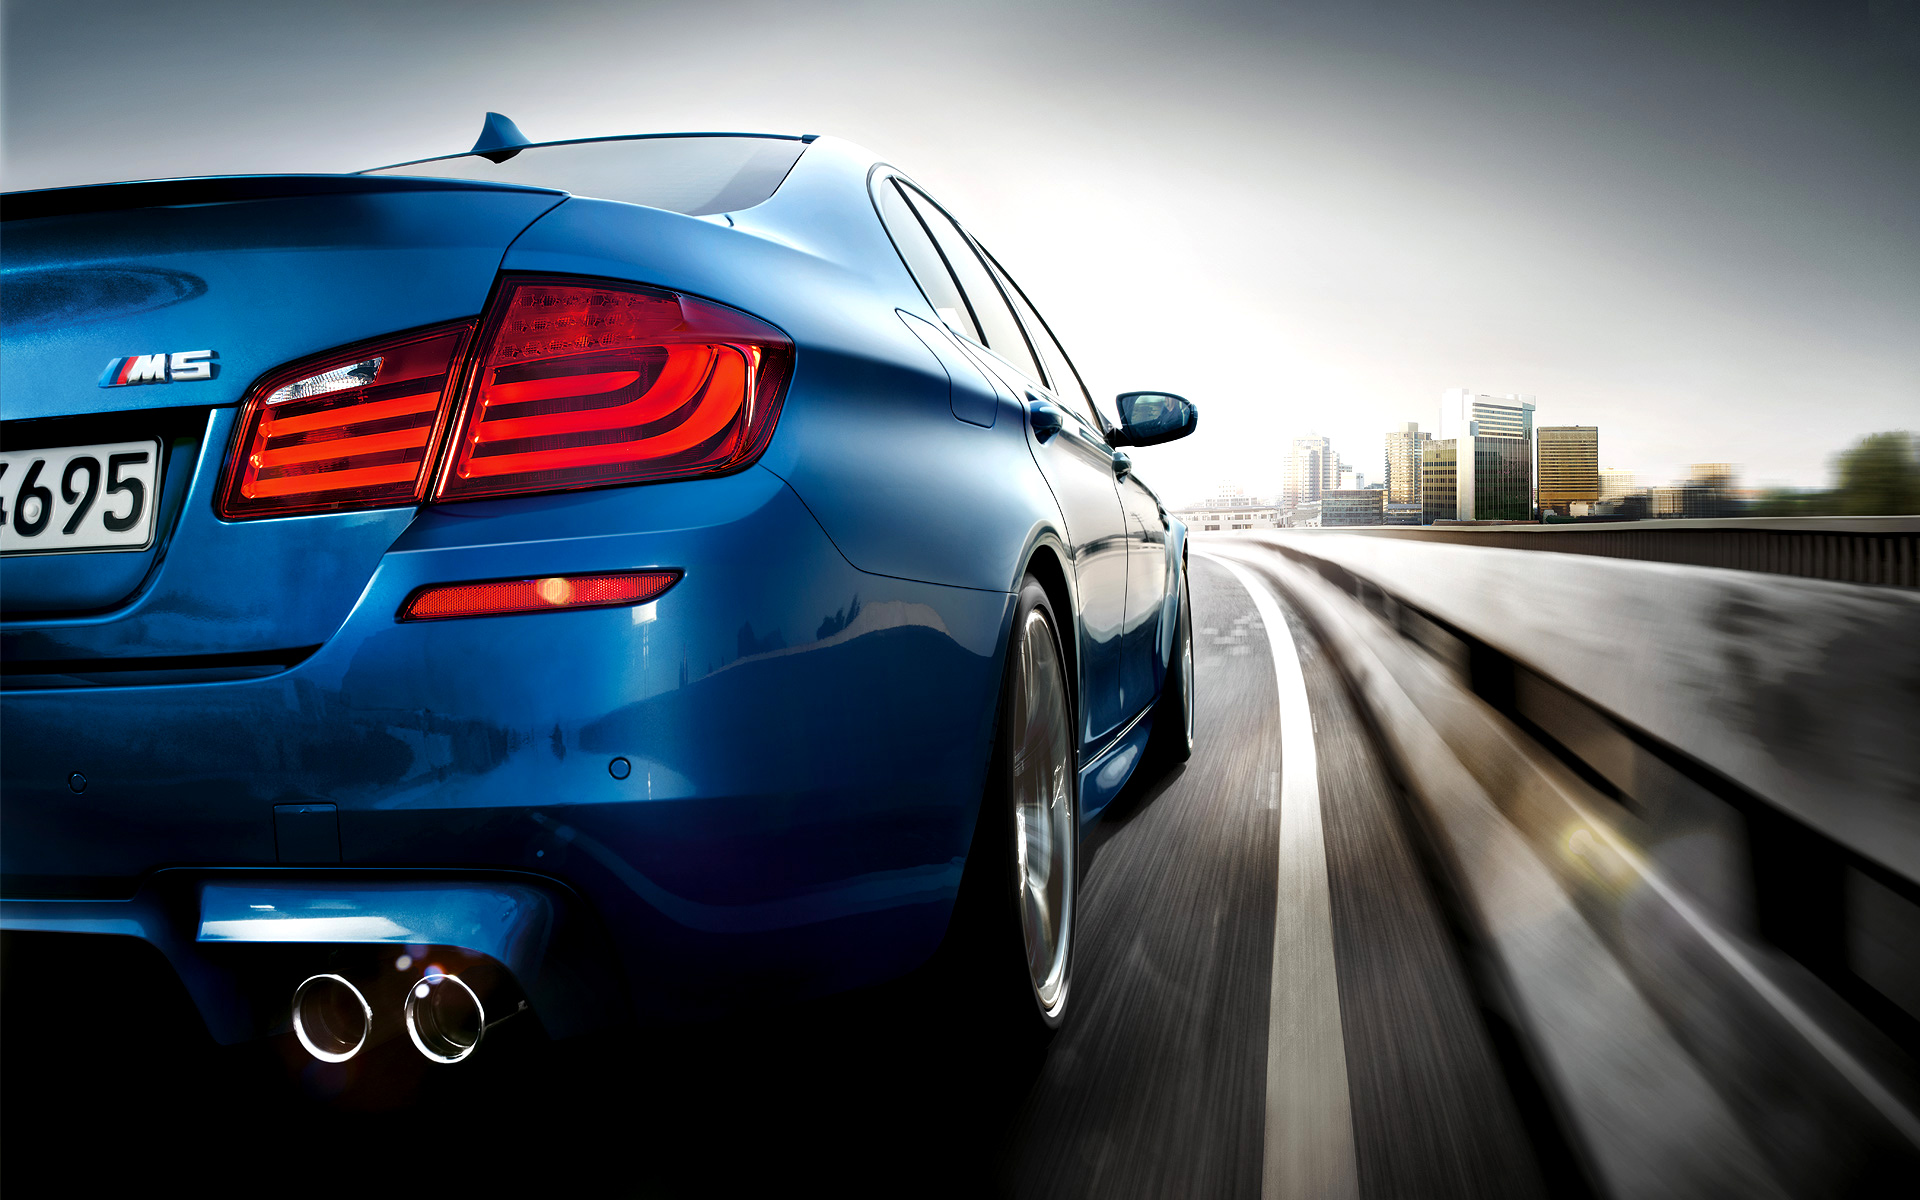 BMW F10 M5 High Quality Wallpapers 1920x1200 wallpaper 10 1920x1200